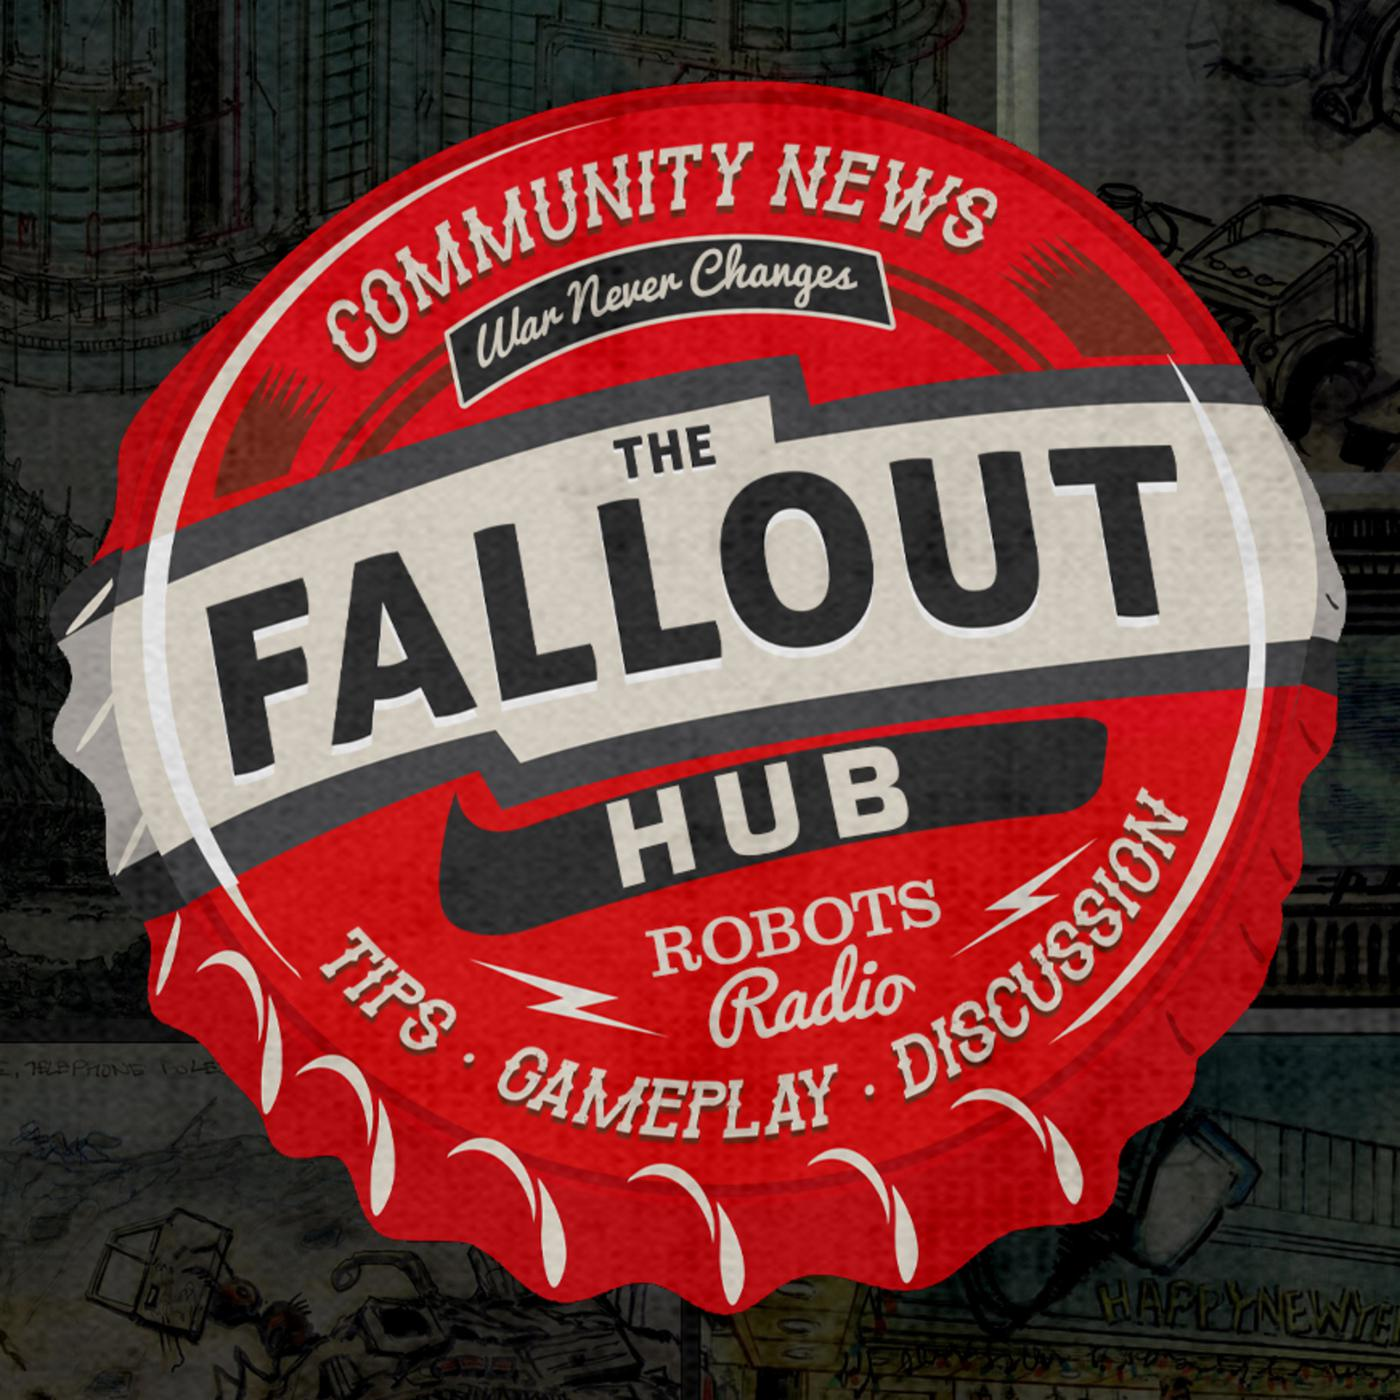 The Fallout Hub Podcast Dave Ken And Mr Robots Listen Notes It's the kind of town where you dig your own grave prior to being shot in the head and left for dead… and that's before things really get ugly. listen notes